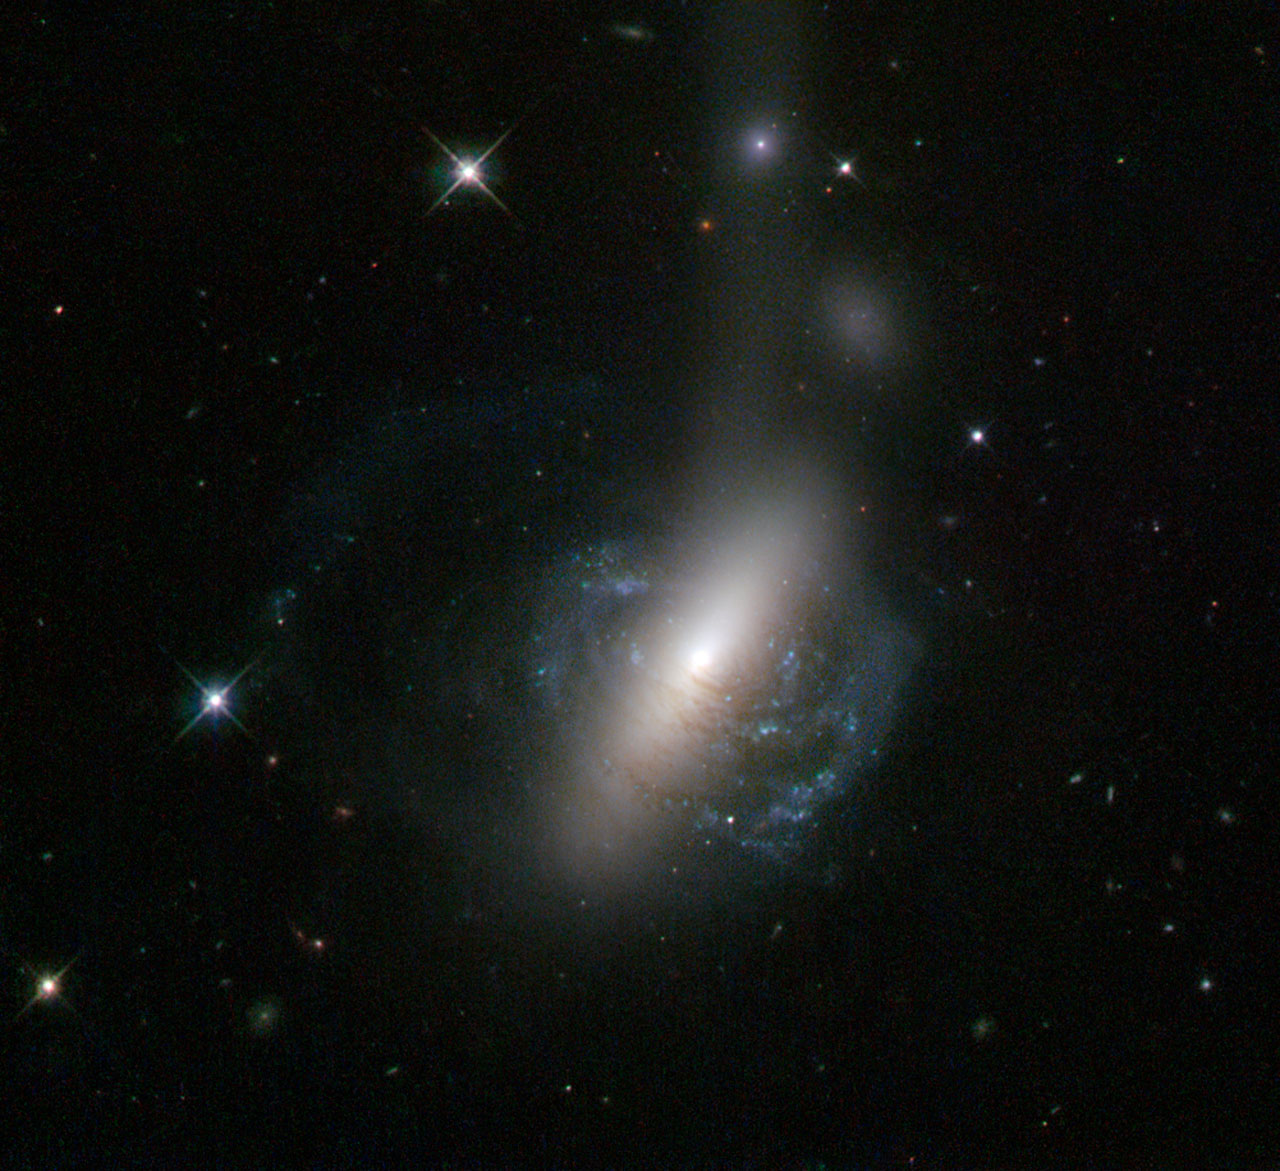 This  new image from the NASA/ESA Hubble Space Telescope captures an  ongoing cosmic collision between two galaxies — a spiral galaxy is in  the process of colliding with a lenticular galaxy. The collision looks  almost as if it is popping out of the screen in 3D, with parts of the  spiral arms clearly embracing the lenticular galaxy's bulge. The  image also reveals further evidence of the collision. There is a bright  stream of stars coming out from the merging galaxies, extending out  towards the right  of the image. The bright spot in the middle of the plume, known as ESO  576-69, is what makes this image unique. This spot is believed to be the  nucleus of the former spiral galaxy, which was ejected from the system  during the collision and is now being shredded by tidal forces to  produce the visible stellar stream. A version of this image was entered into the Hubble's Hidden Treasures image processing competition by contestant Luca Limatola.